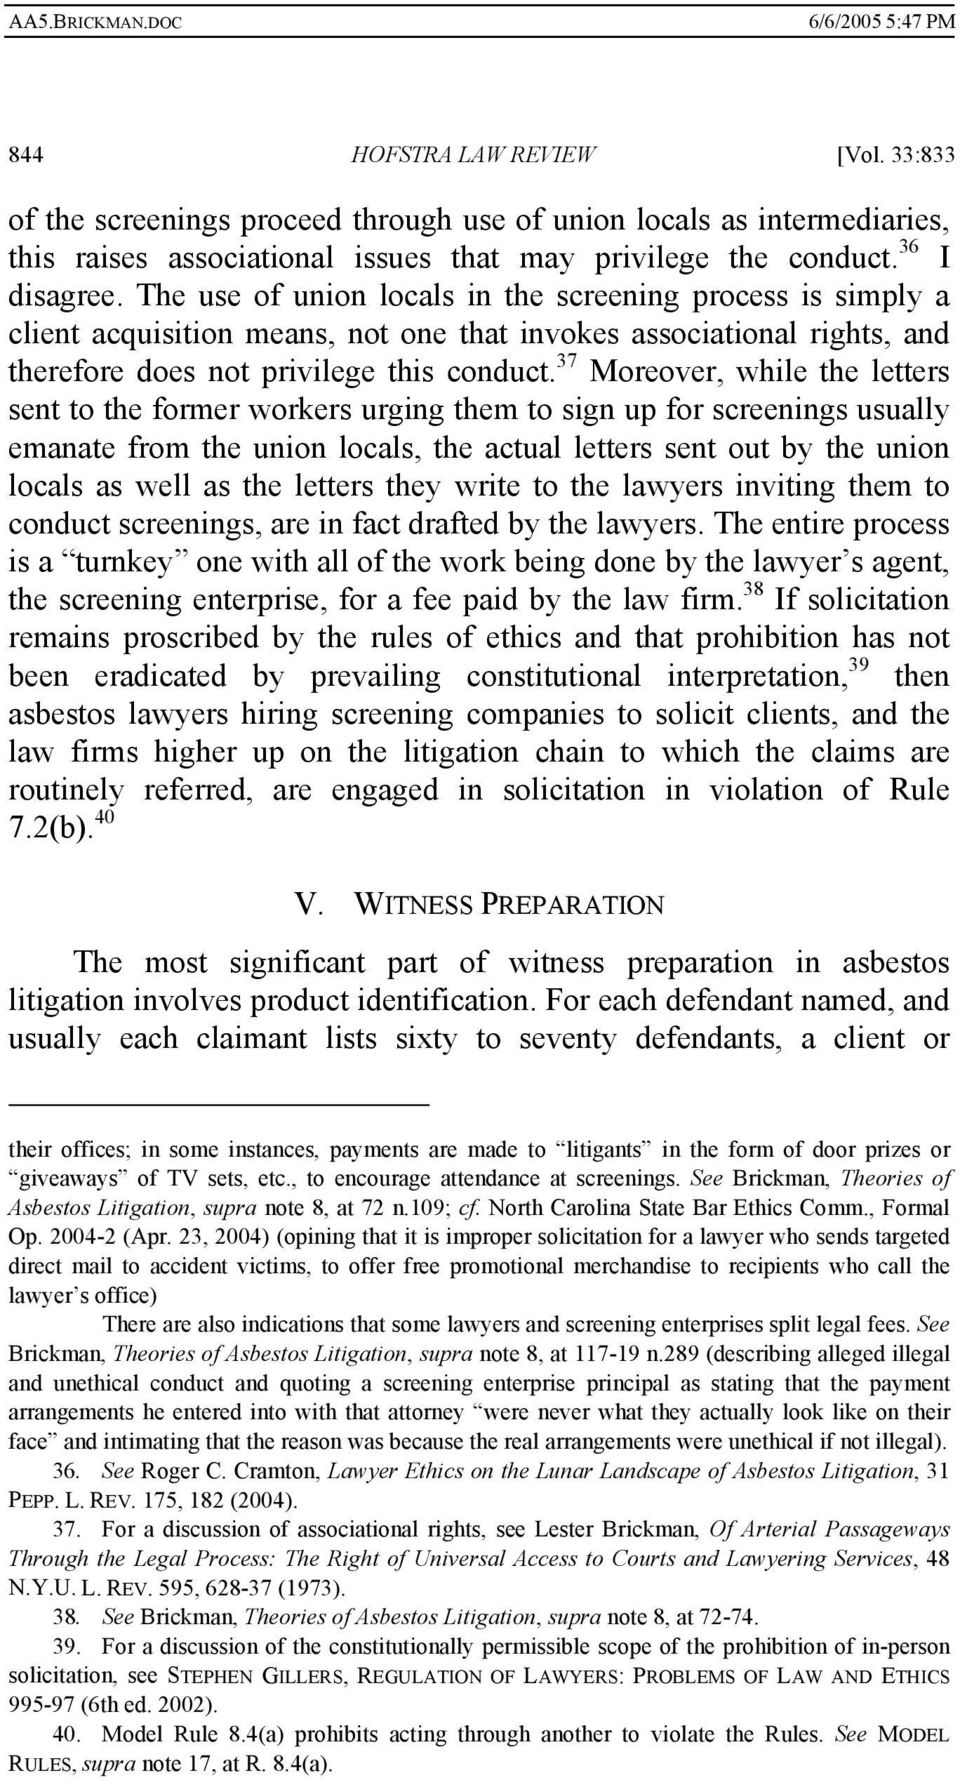 37 Moreover, while the letters sent to the former workers urging them to sign up for screenings usually emanate from the union locals, the actual letters sent out by the union locals as well as the